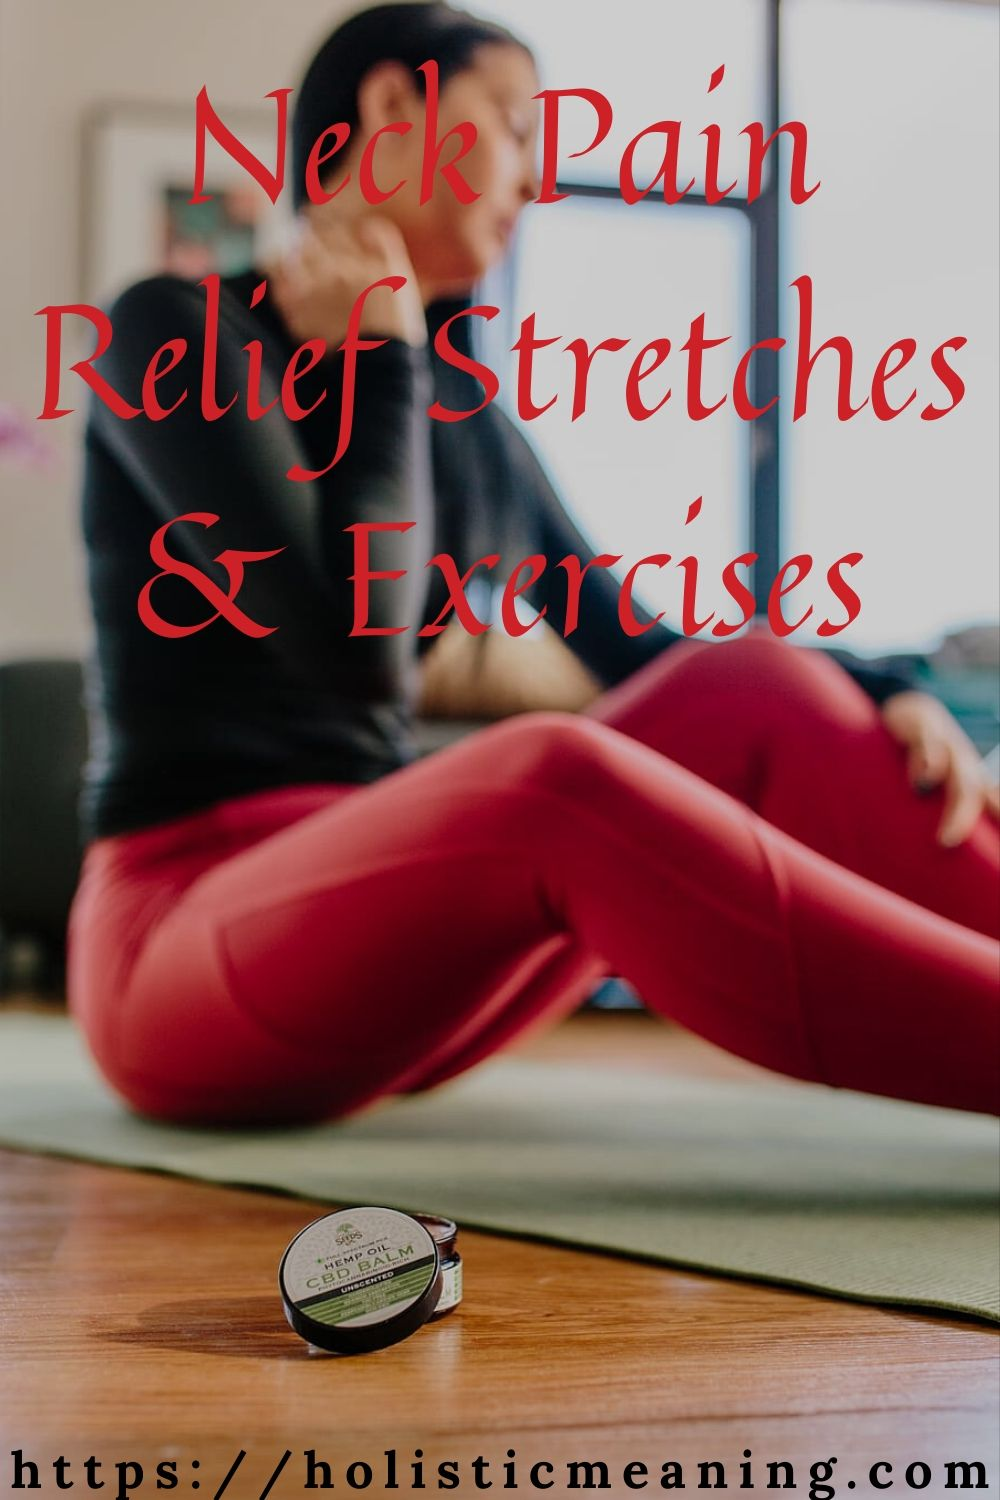 Neck Pain Relief Stretches & Exercises